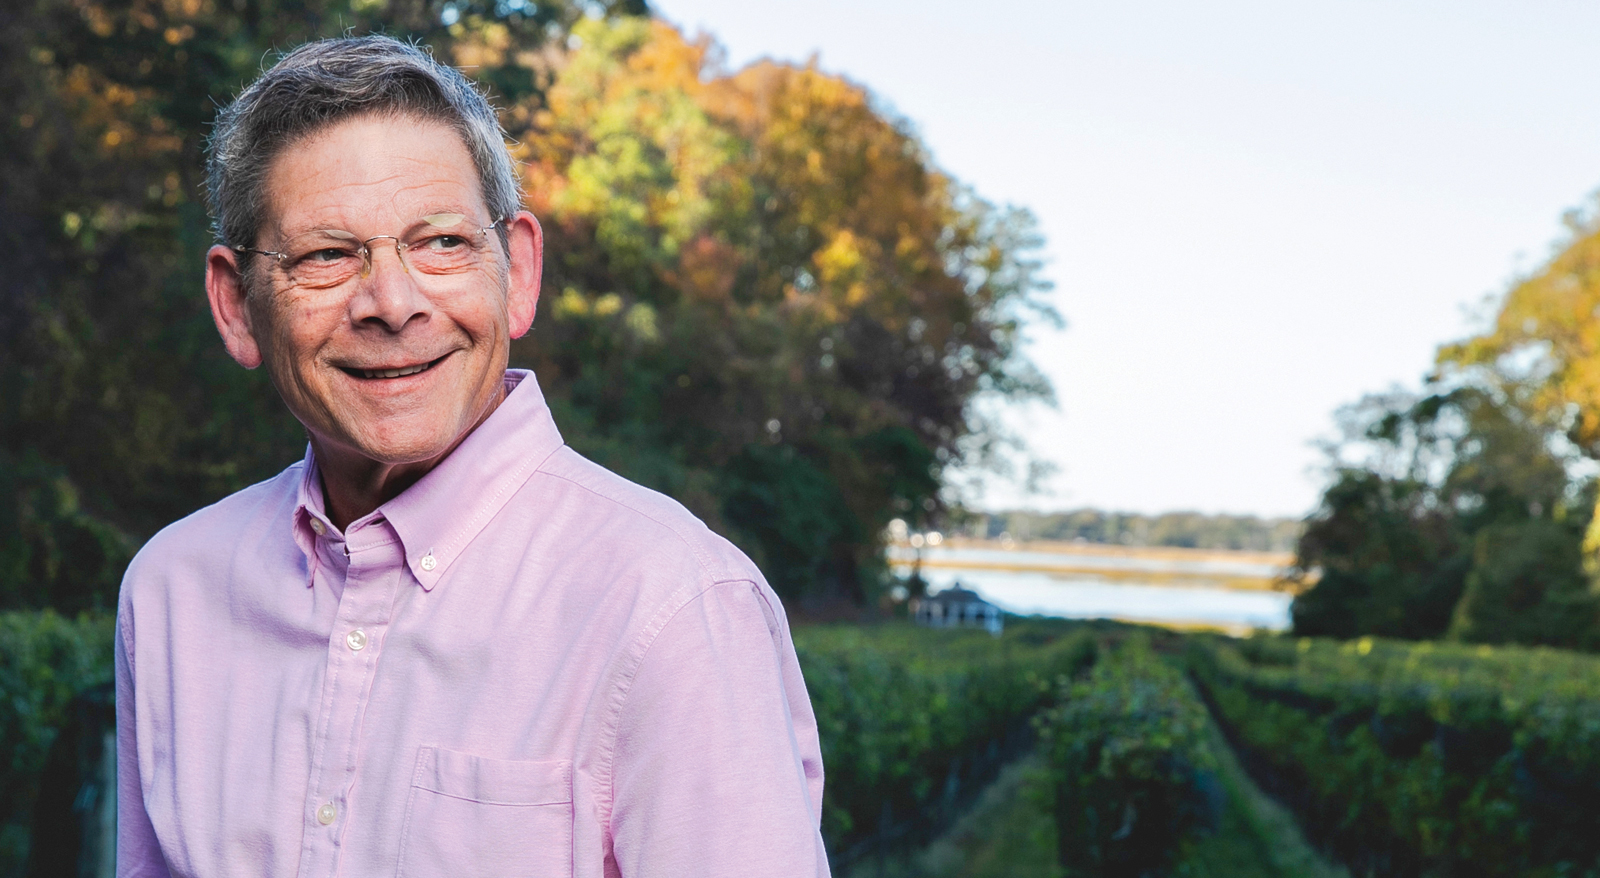 Technology disrupter, medical innovator, business pioneer and Stony Brook Foundation Trustee David Acker transformed his 18th century estate in Head of the Harbor, Long Island, New York, into Harmony Vineyards in 1998.